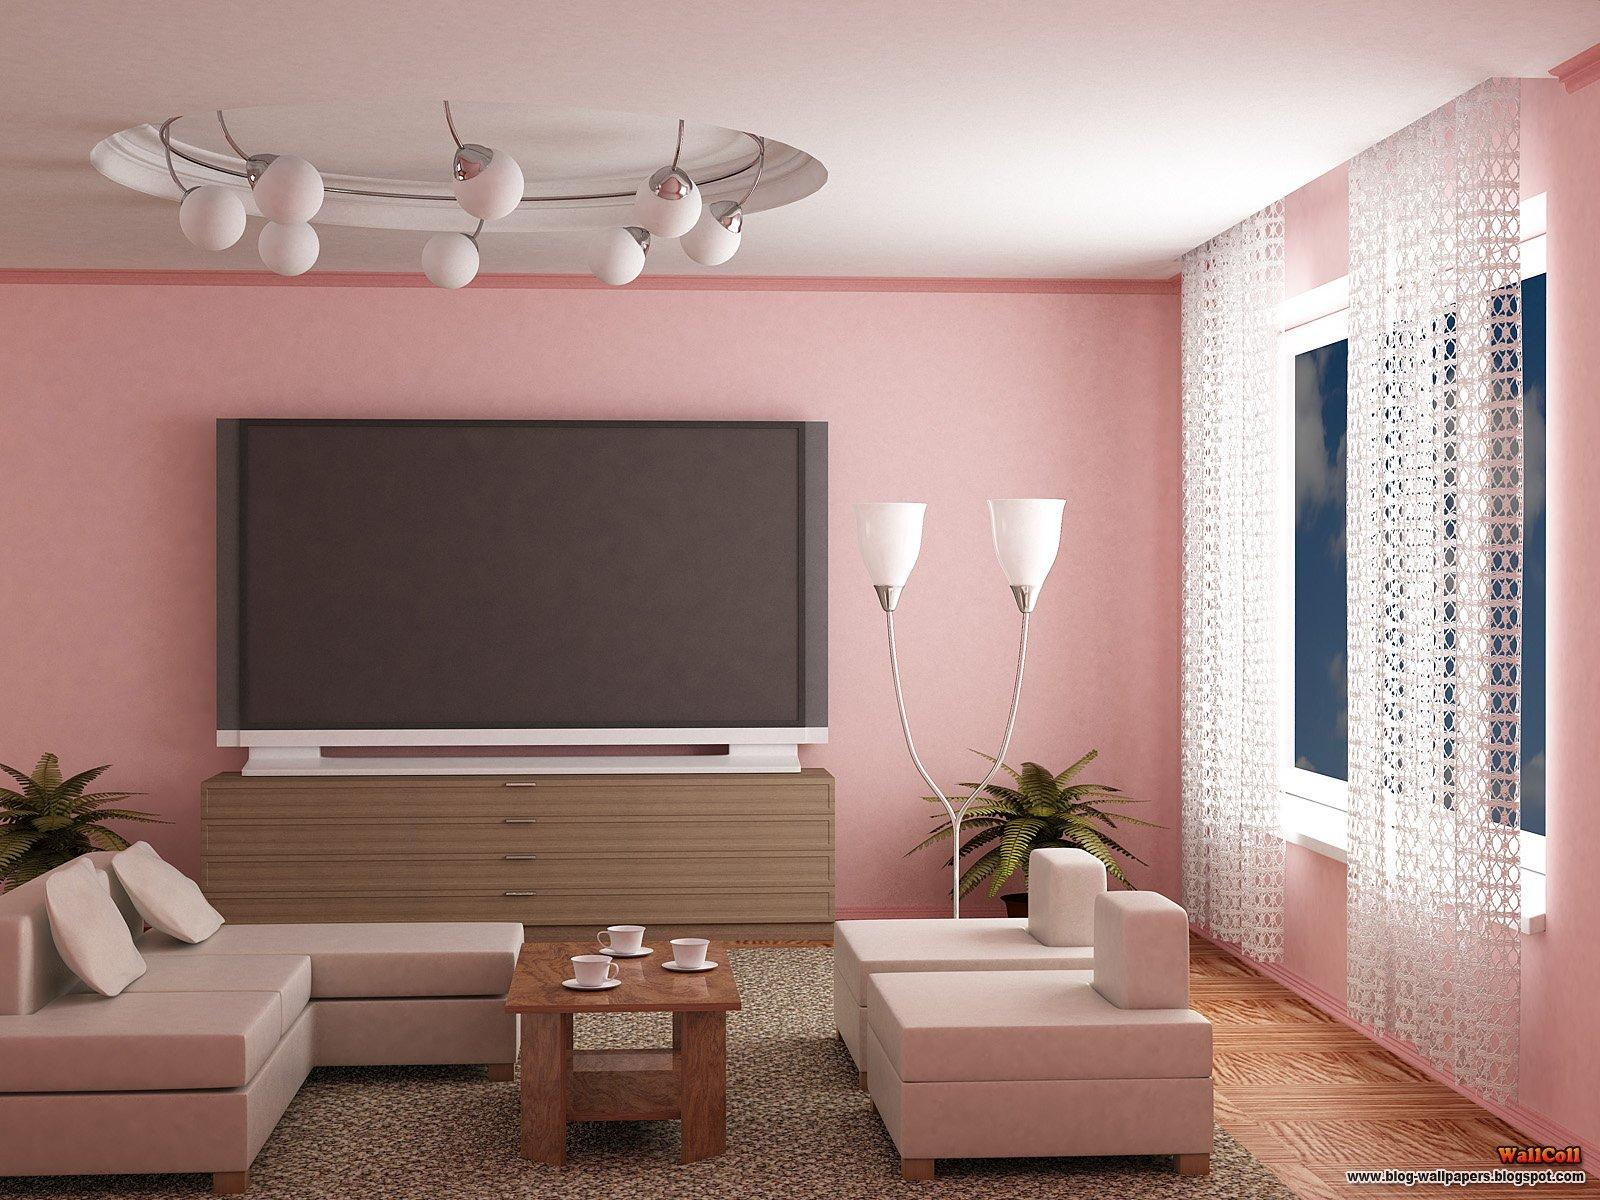 Asian paints royale pink colour rooms photos bill house plans Paint colors in rooms